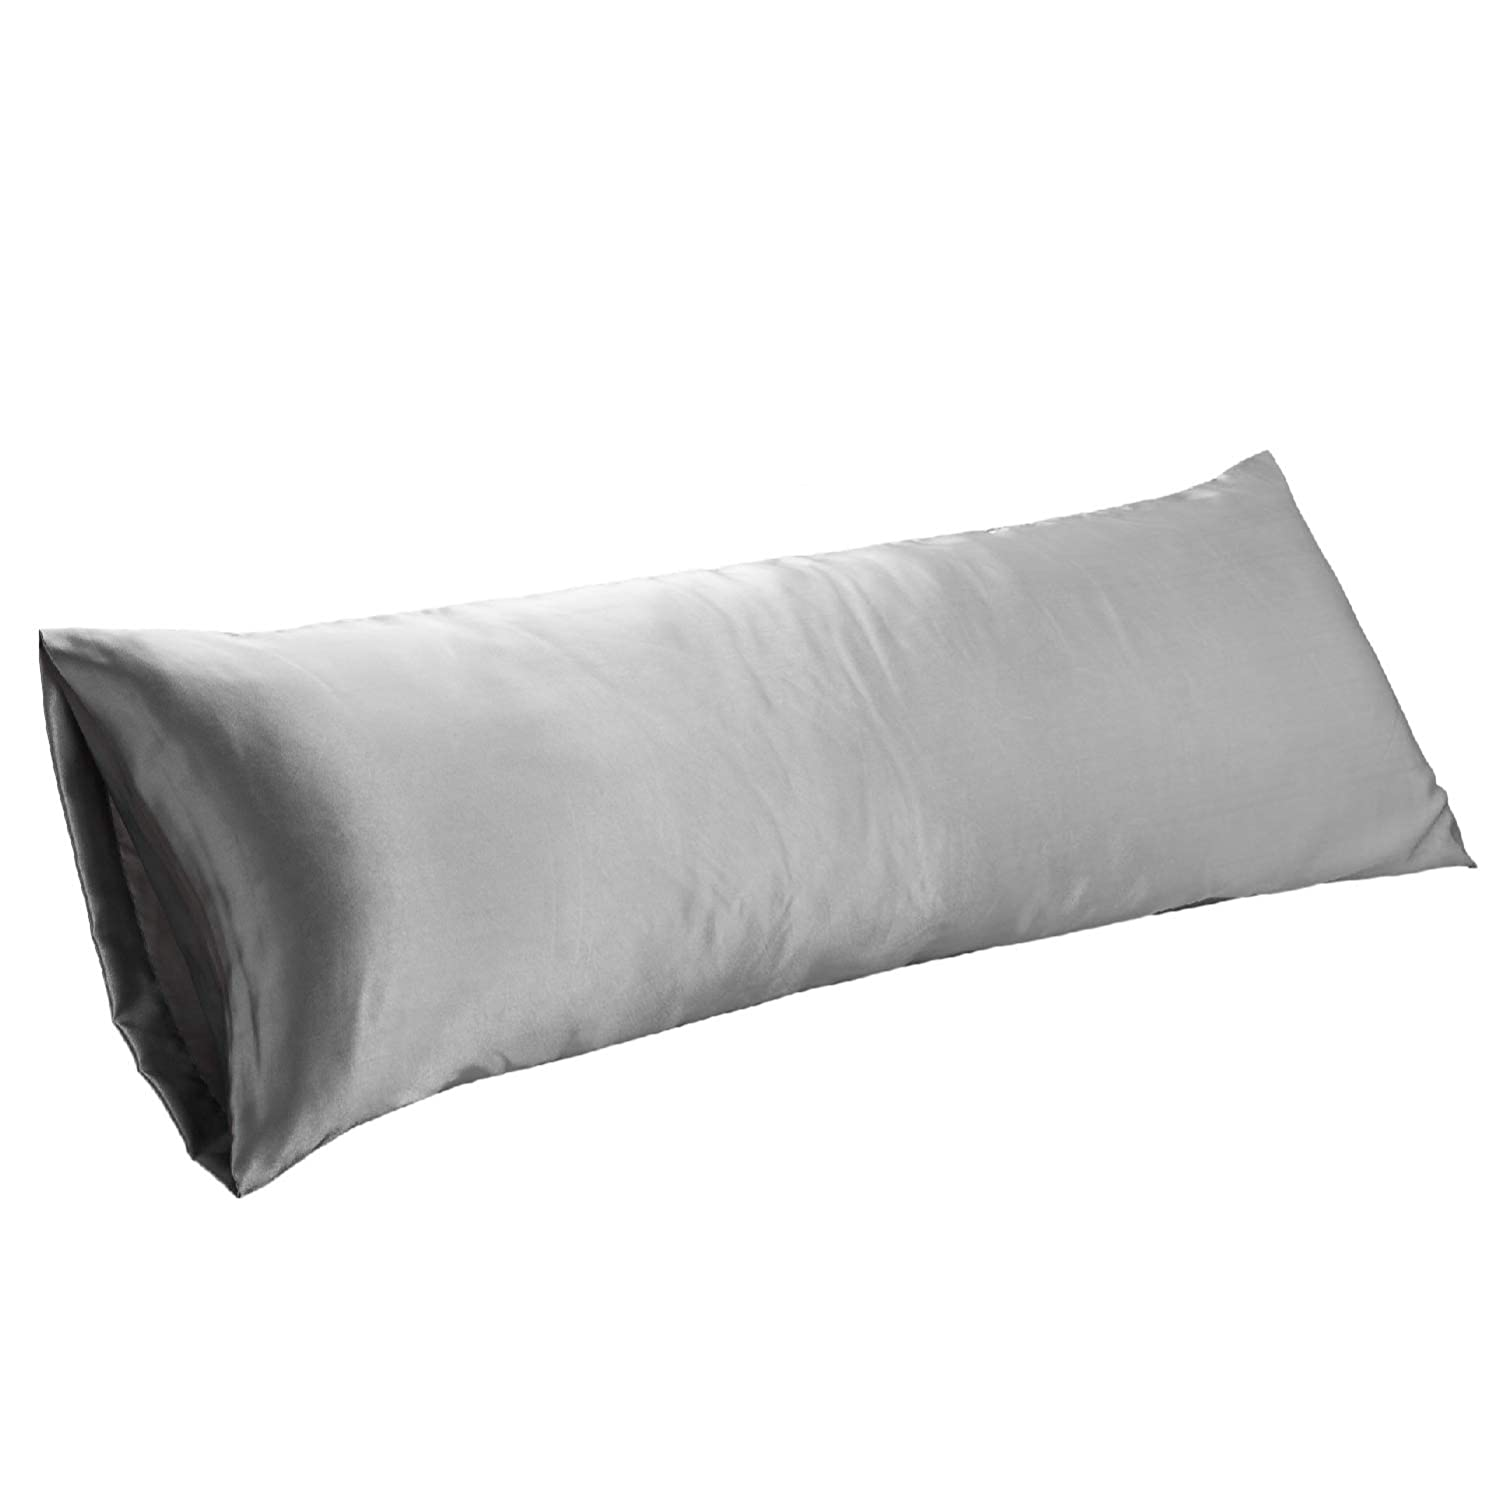 Bedsure Body Pillow Cover Grey 20 x 54 inches - Super Soft Silky Satin Body Pillowcases - Envelope Closure Body Pillow Pillowcases for Adults Pregnant Women